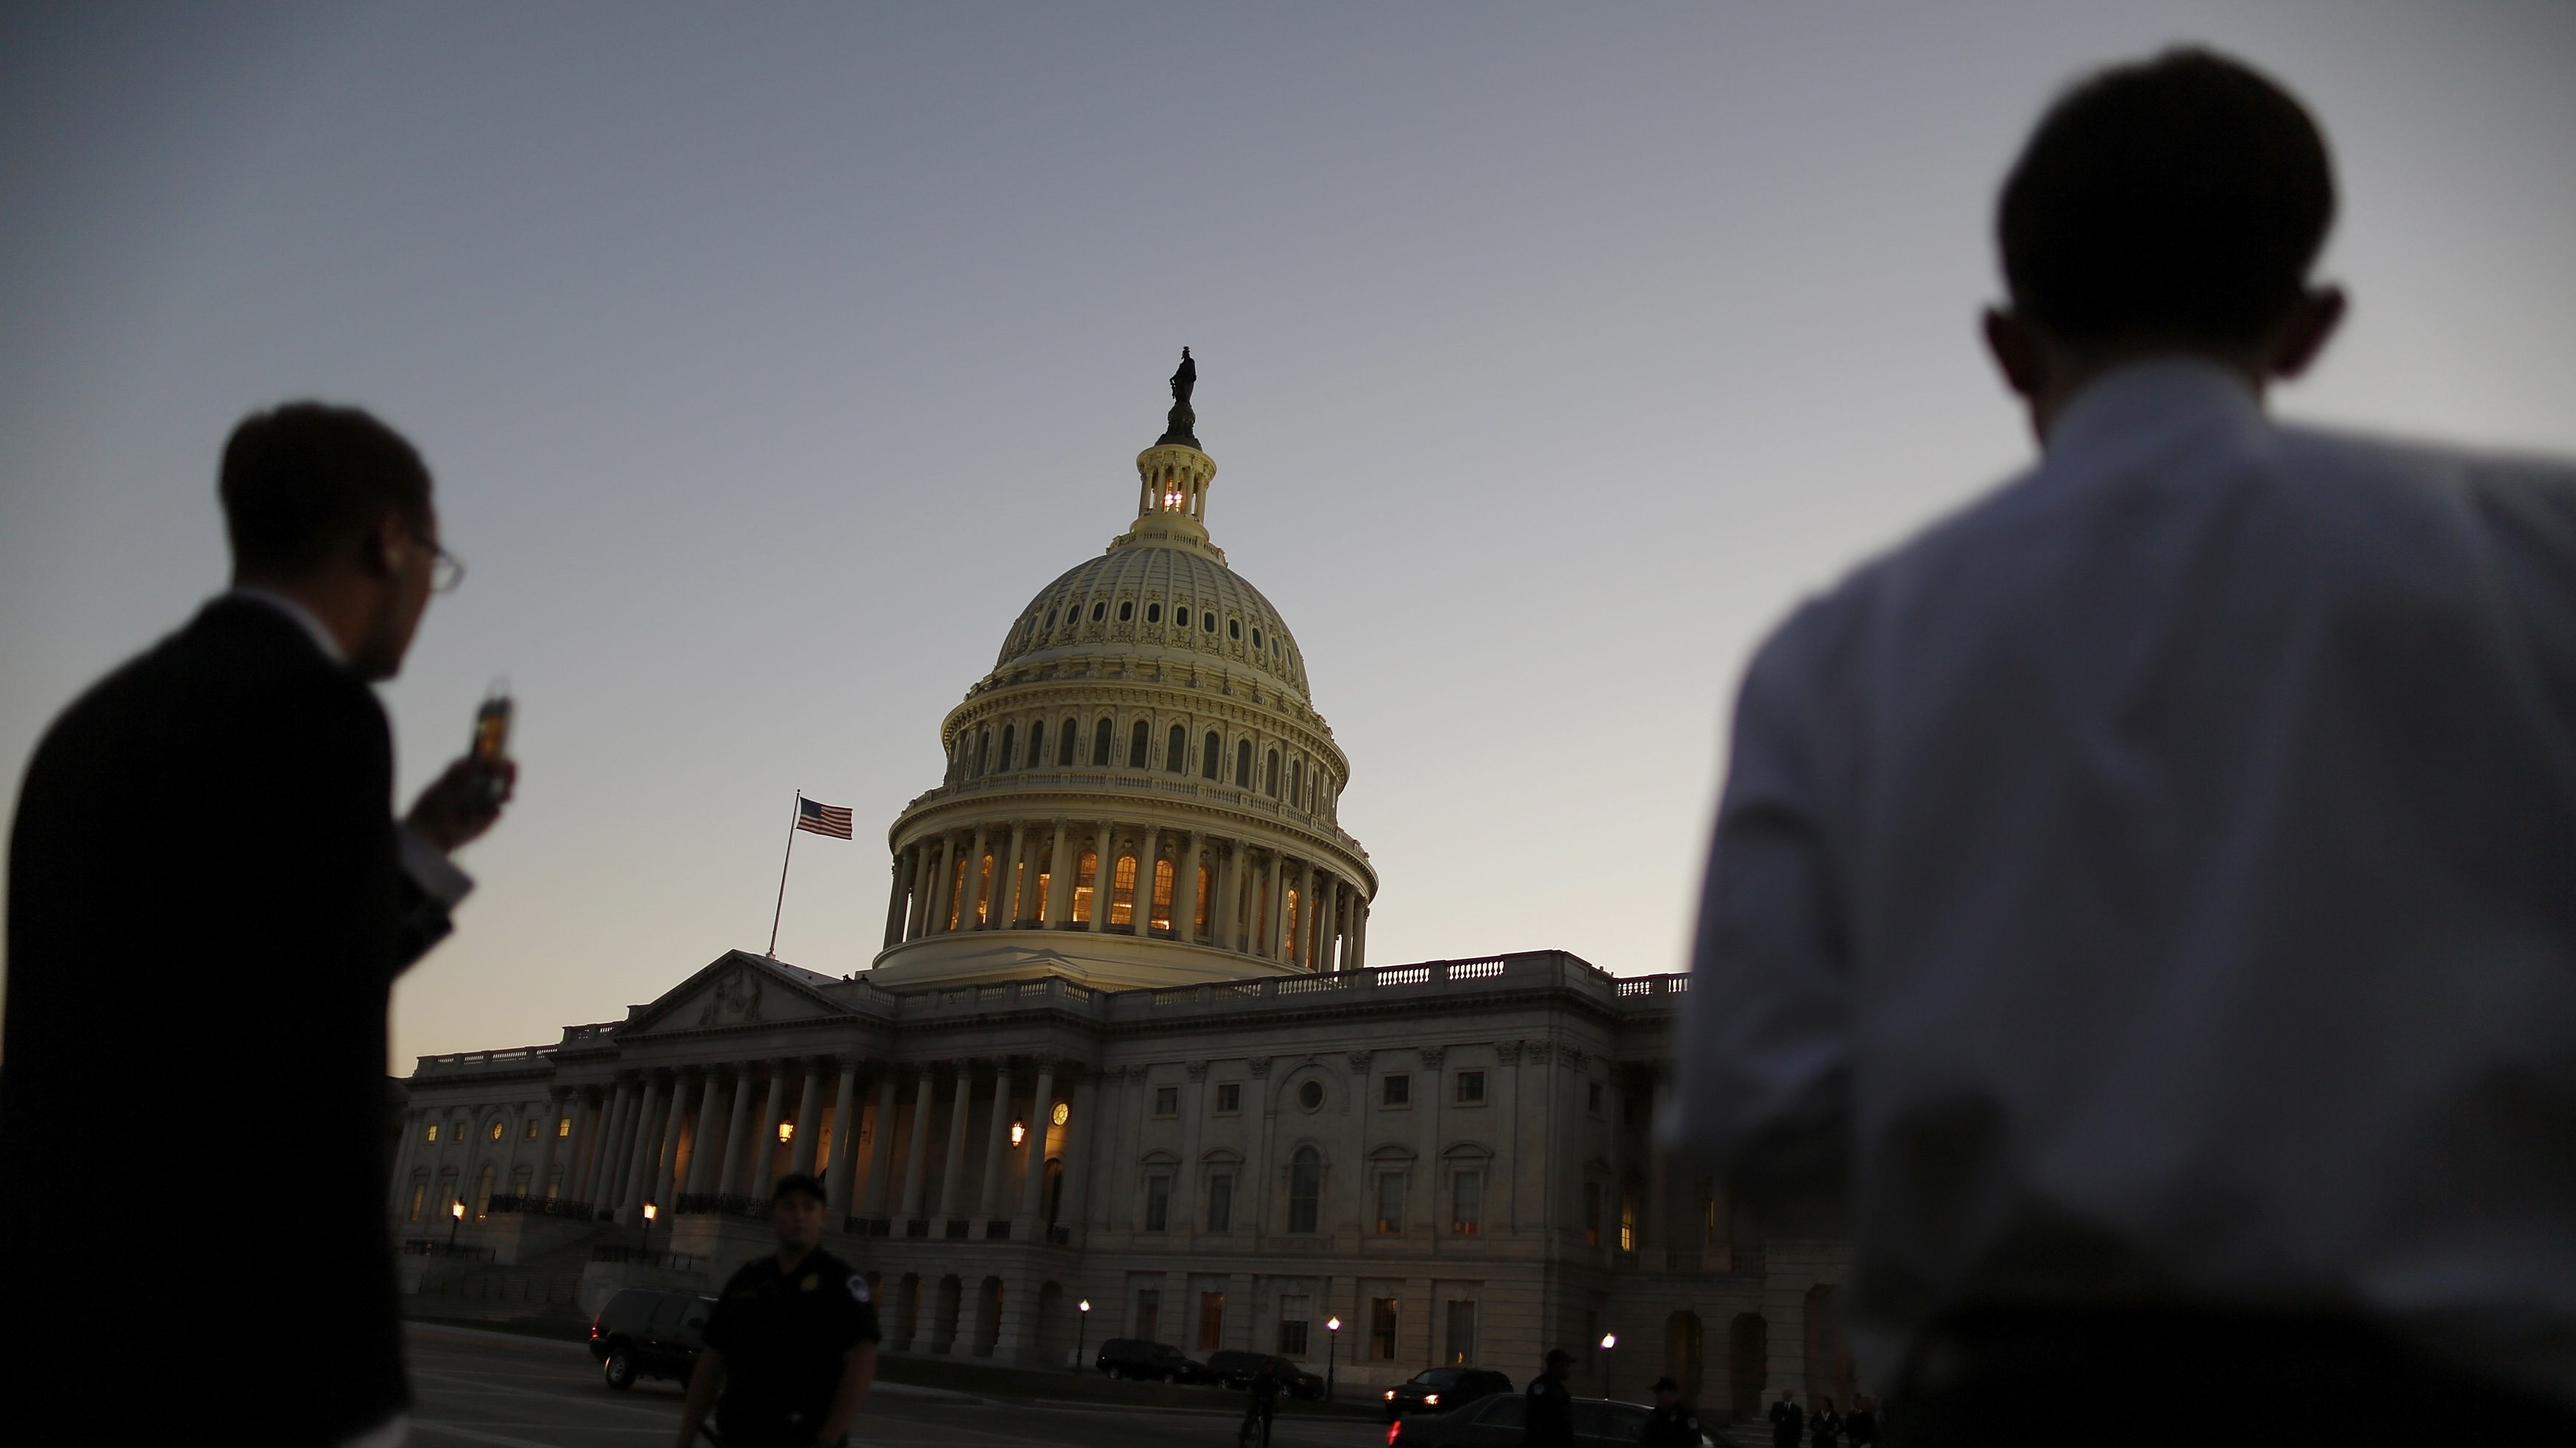 Night falls over the U.S. Capitol Dome, as members of the Republican-controlled U.S. House of Representatives deal with a budget showdown with the Democratic-controlled U.S. Senate, and a possible government shutdown in Washington, September 30, 2013. Senate Democrats killed a proposal by the Republican-led House of Representatives to delay Obamacare for a year in return for temporary funding of the federal government. The bill now goes back to the House, where its fate is unknown.